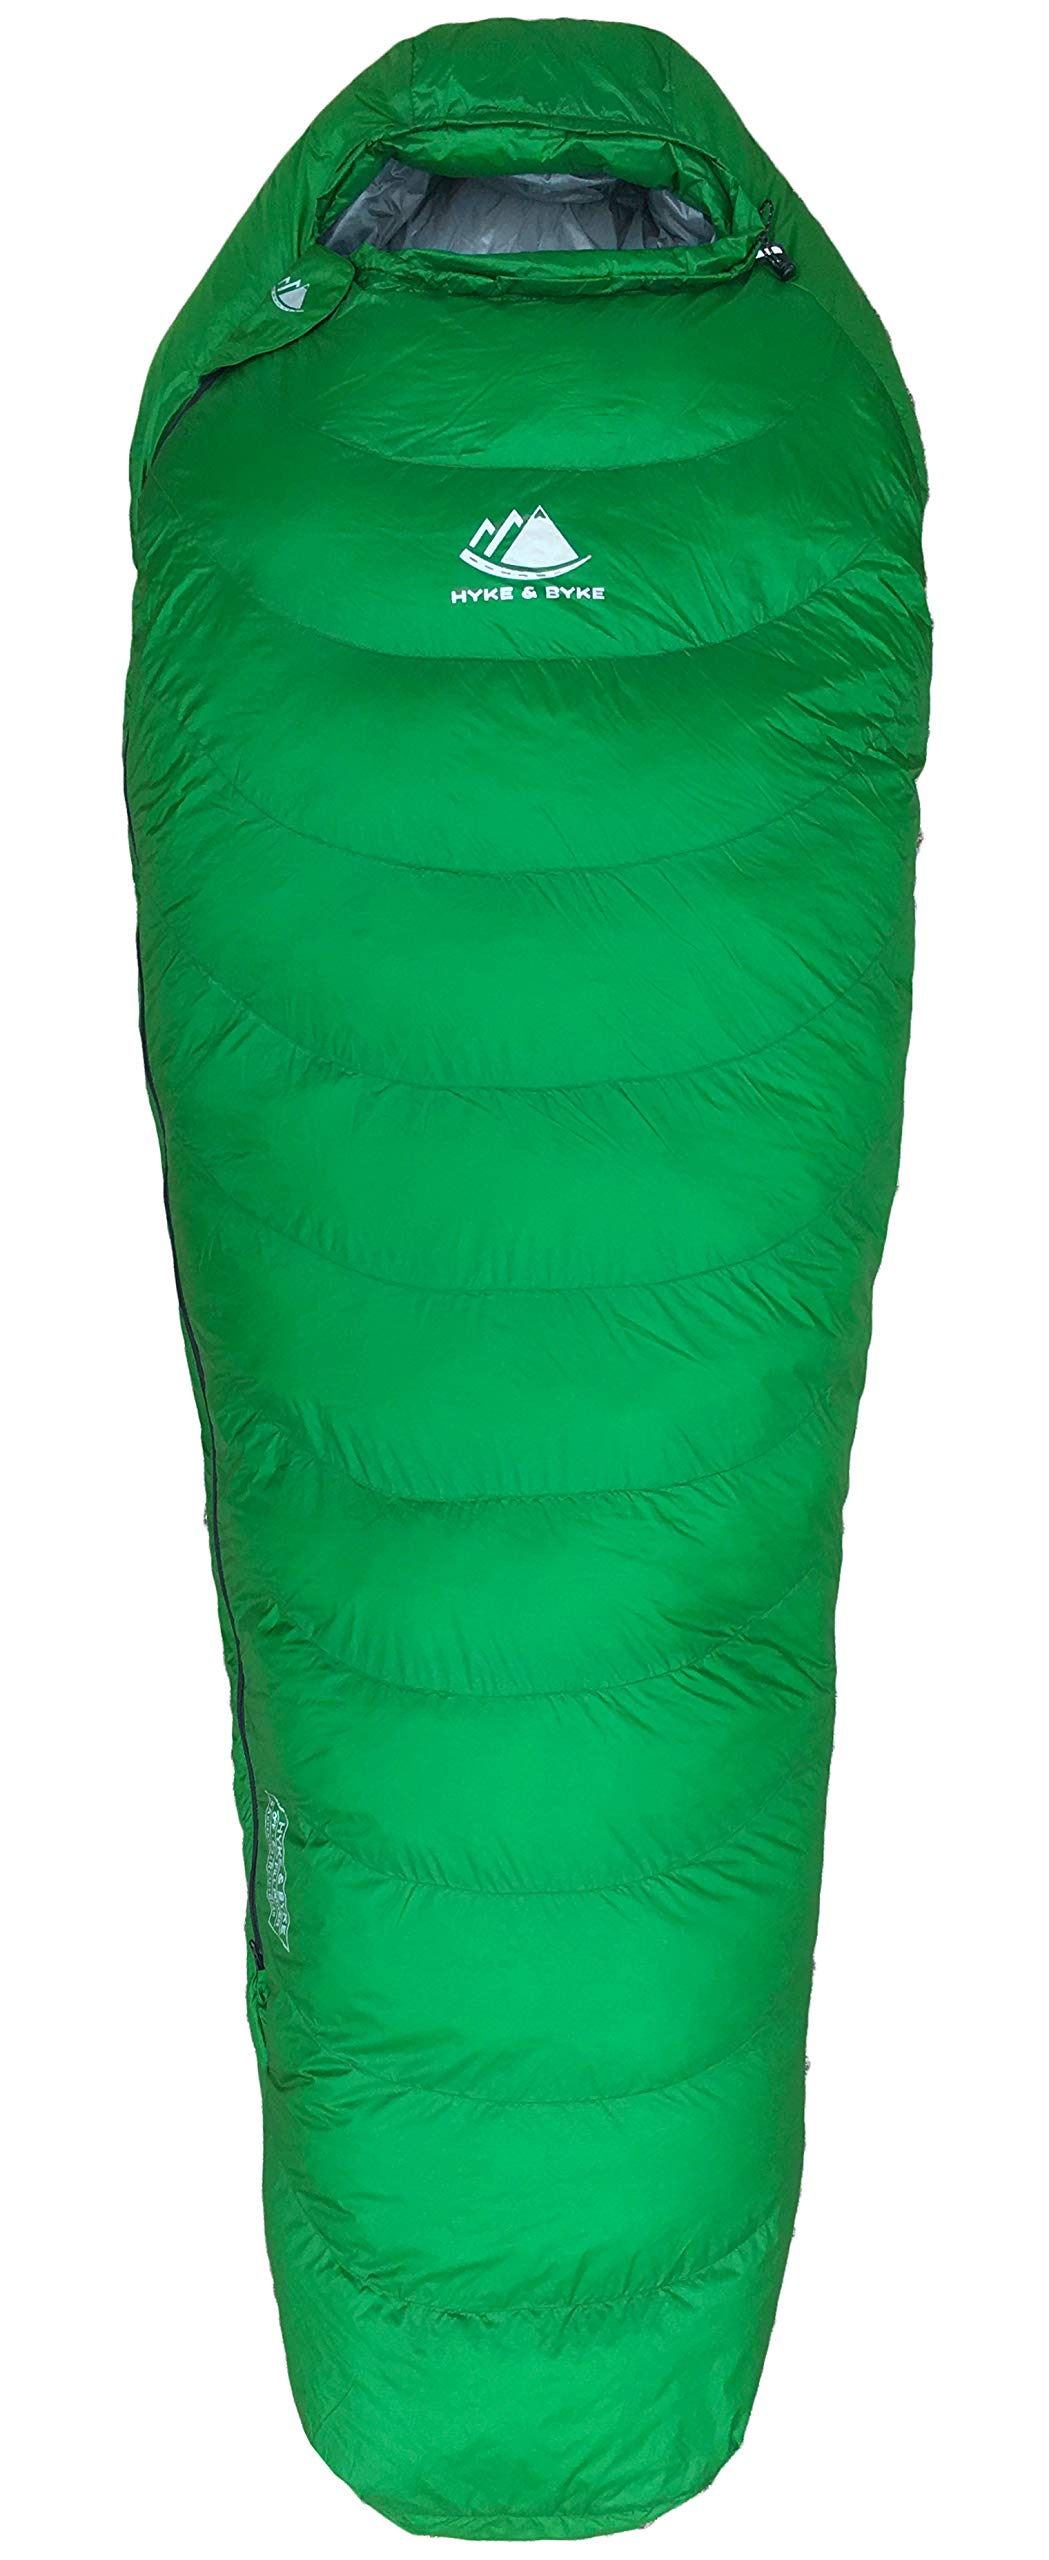 0 Degree Backpacking Sleeping Bag - Zero F Ultralight Mummy Bag for Cold Weather, Lightweight Synthetic Goose Down Like 625 Fill Power Bag For Men's and Women's Winter Camping (Forest Green, Regular) 4